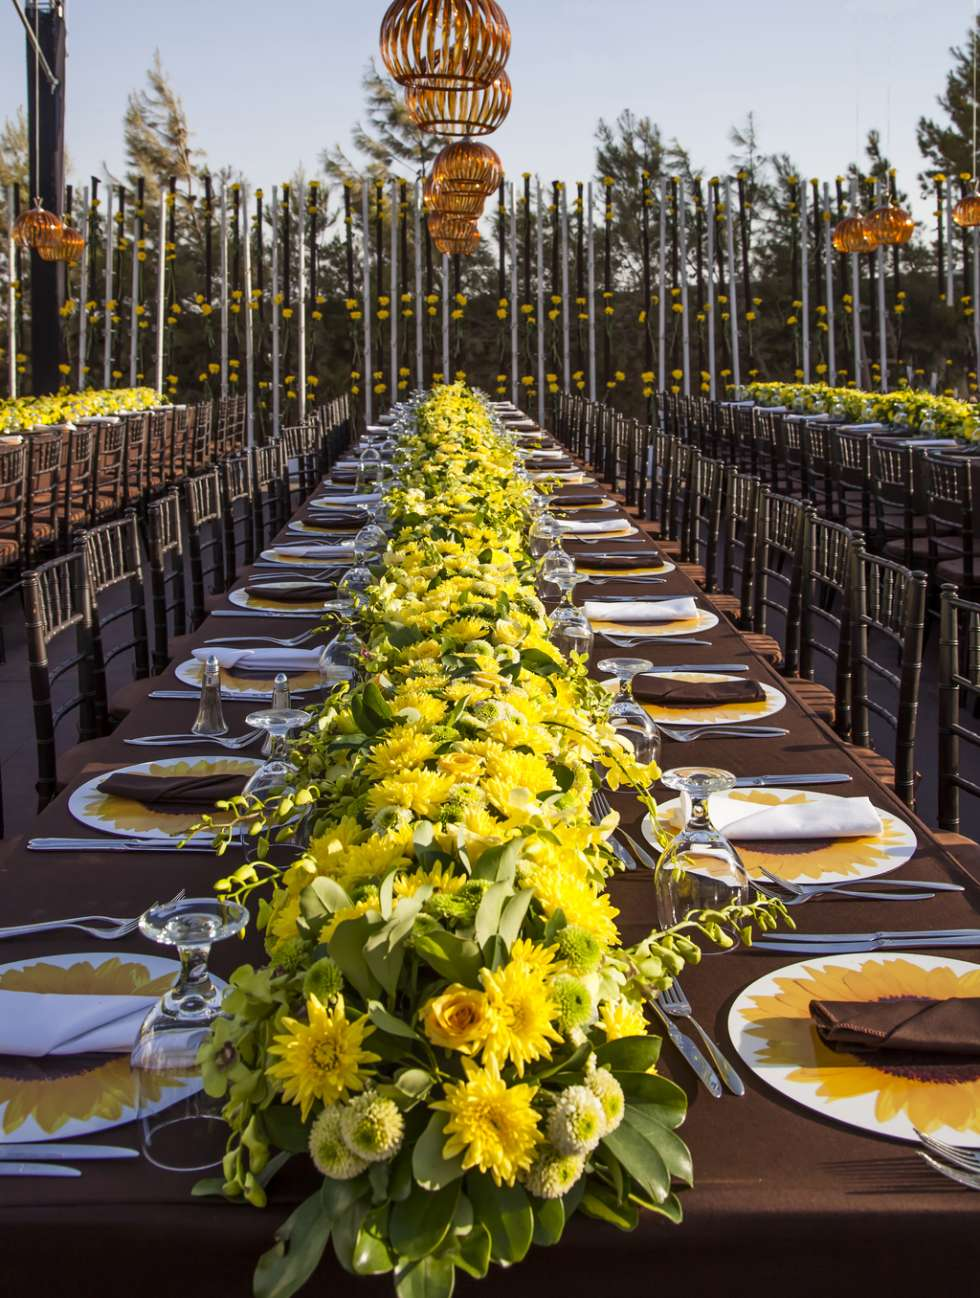 A Sunflower Wedding Theme By My Event Design  Arabia Weddings